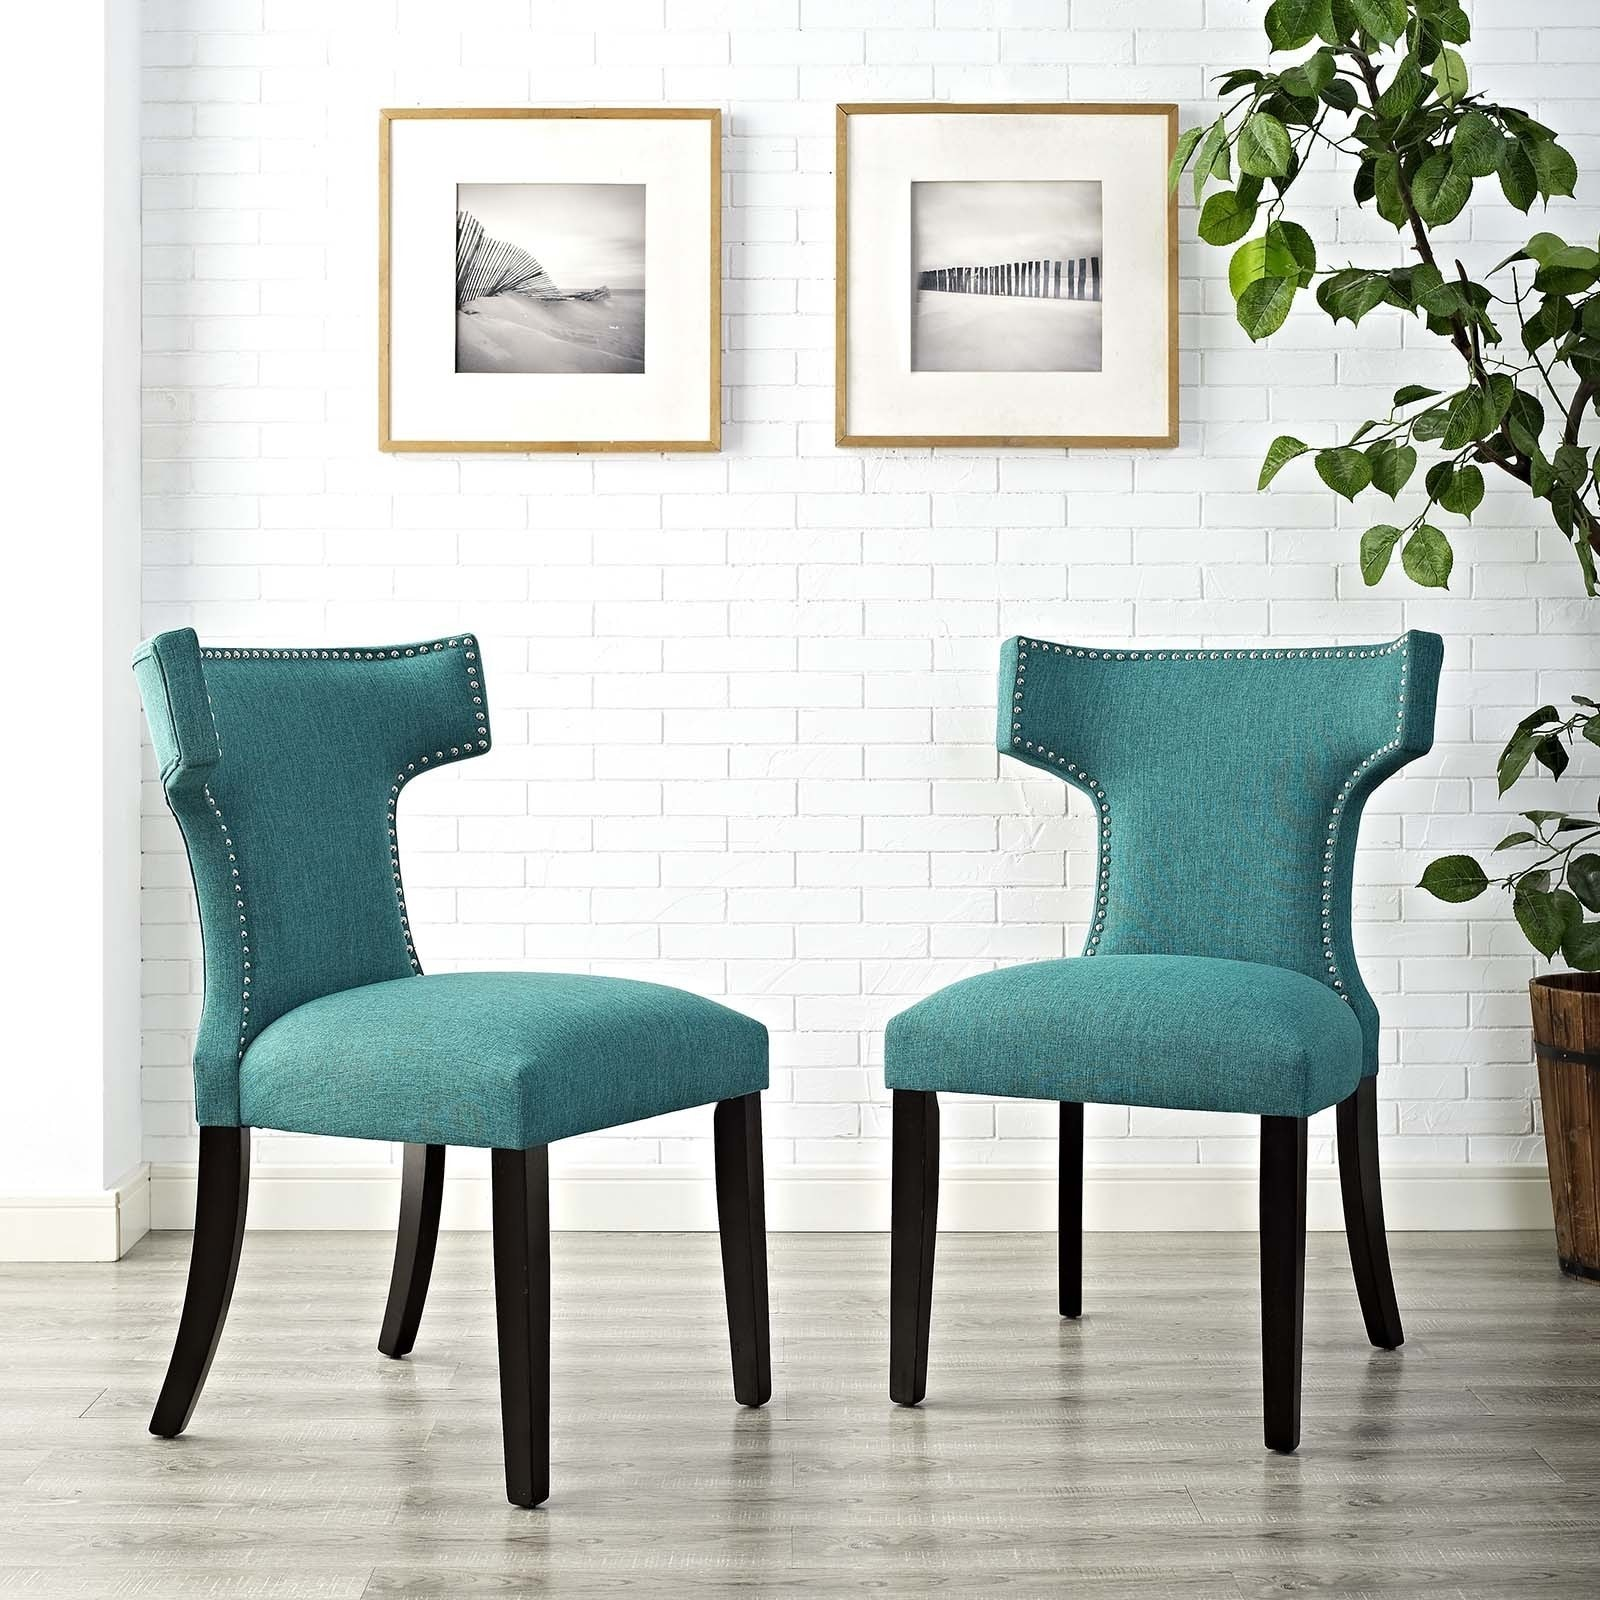 Shop Modway Fabric Curve Dining Chair (Set of 2) - Free Shipping ...